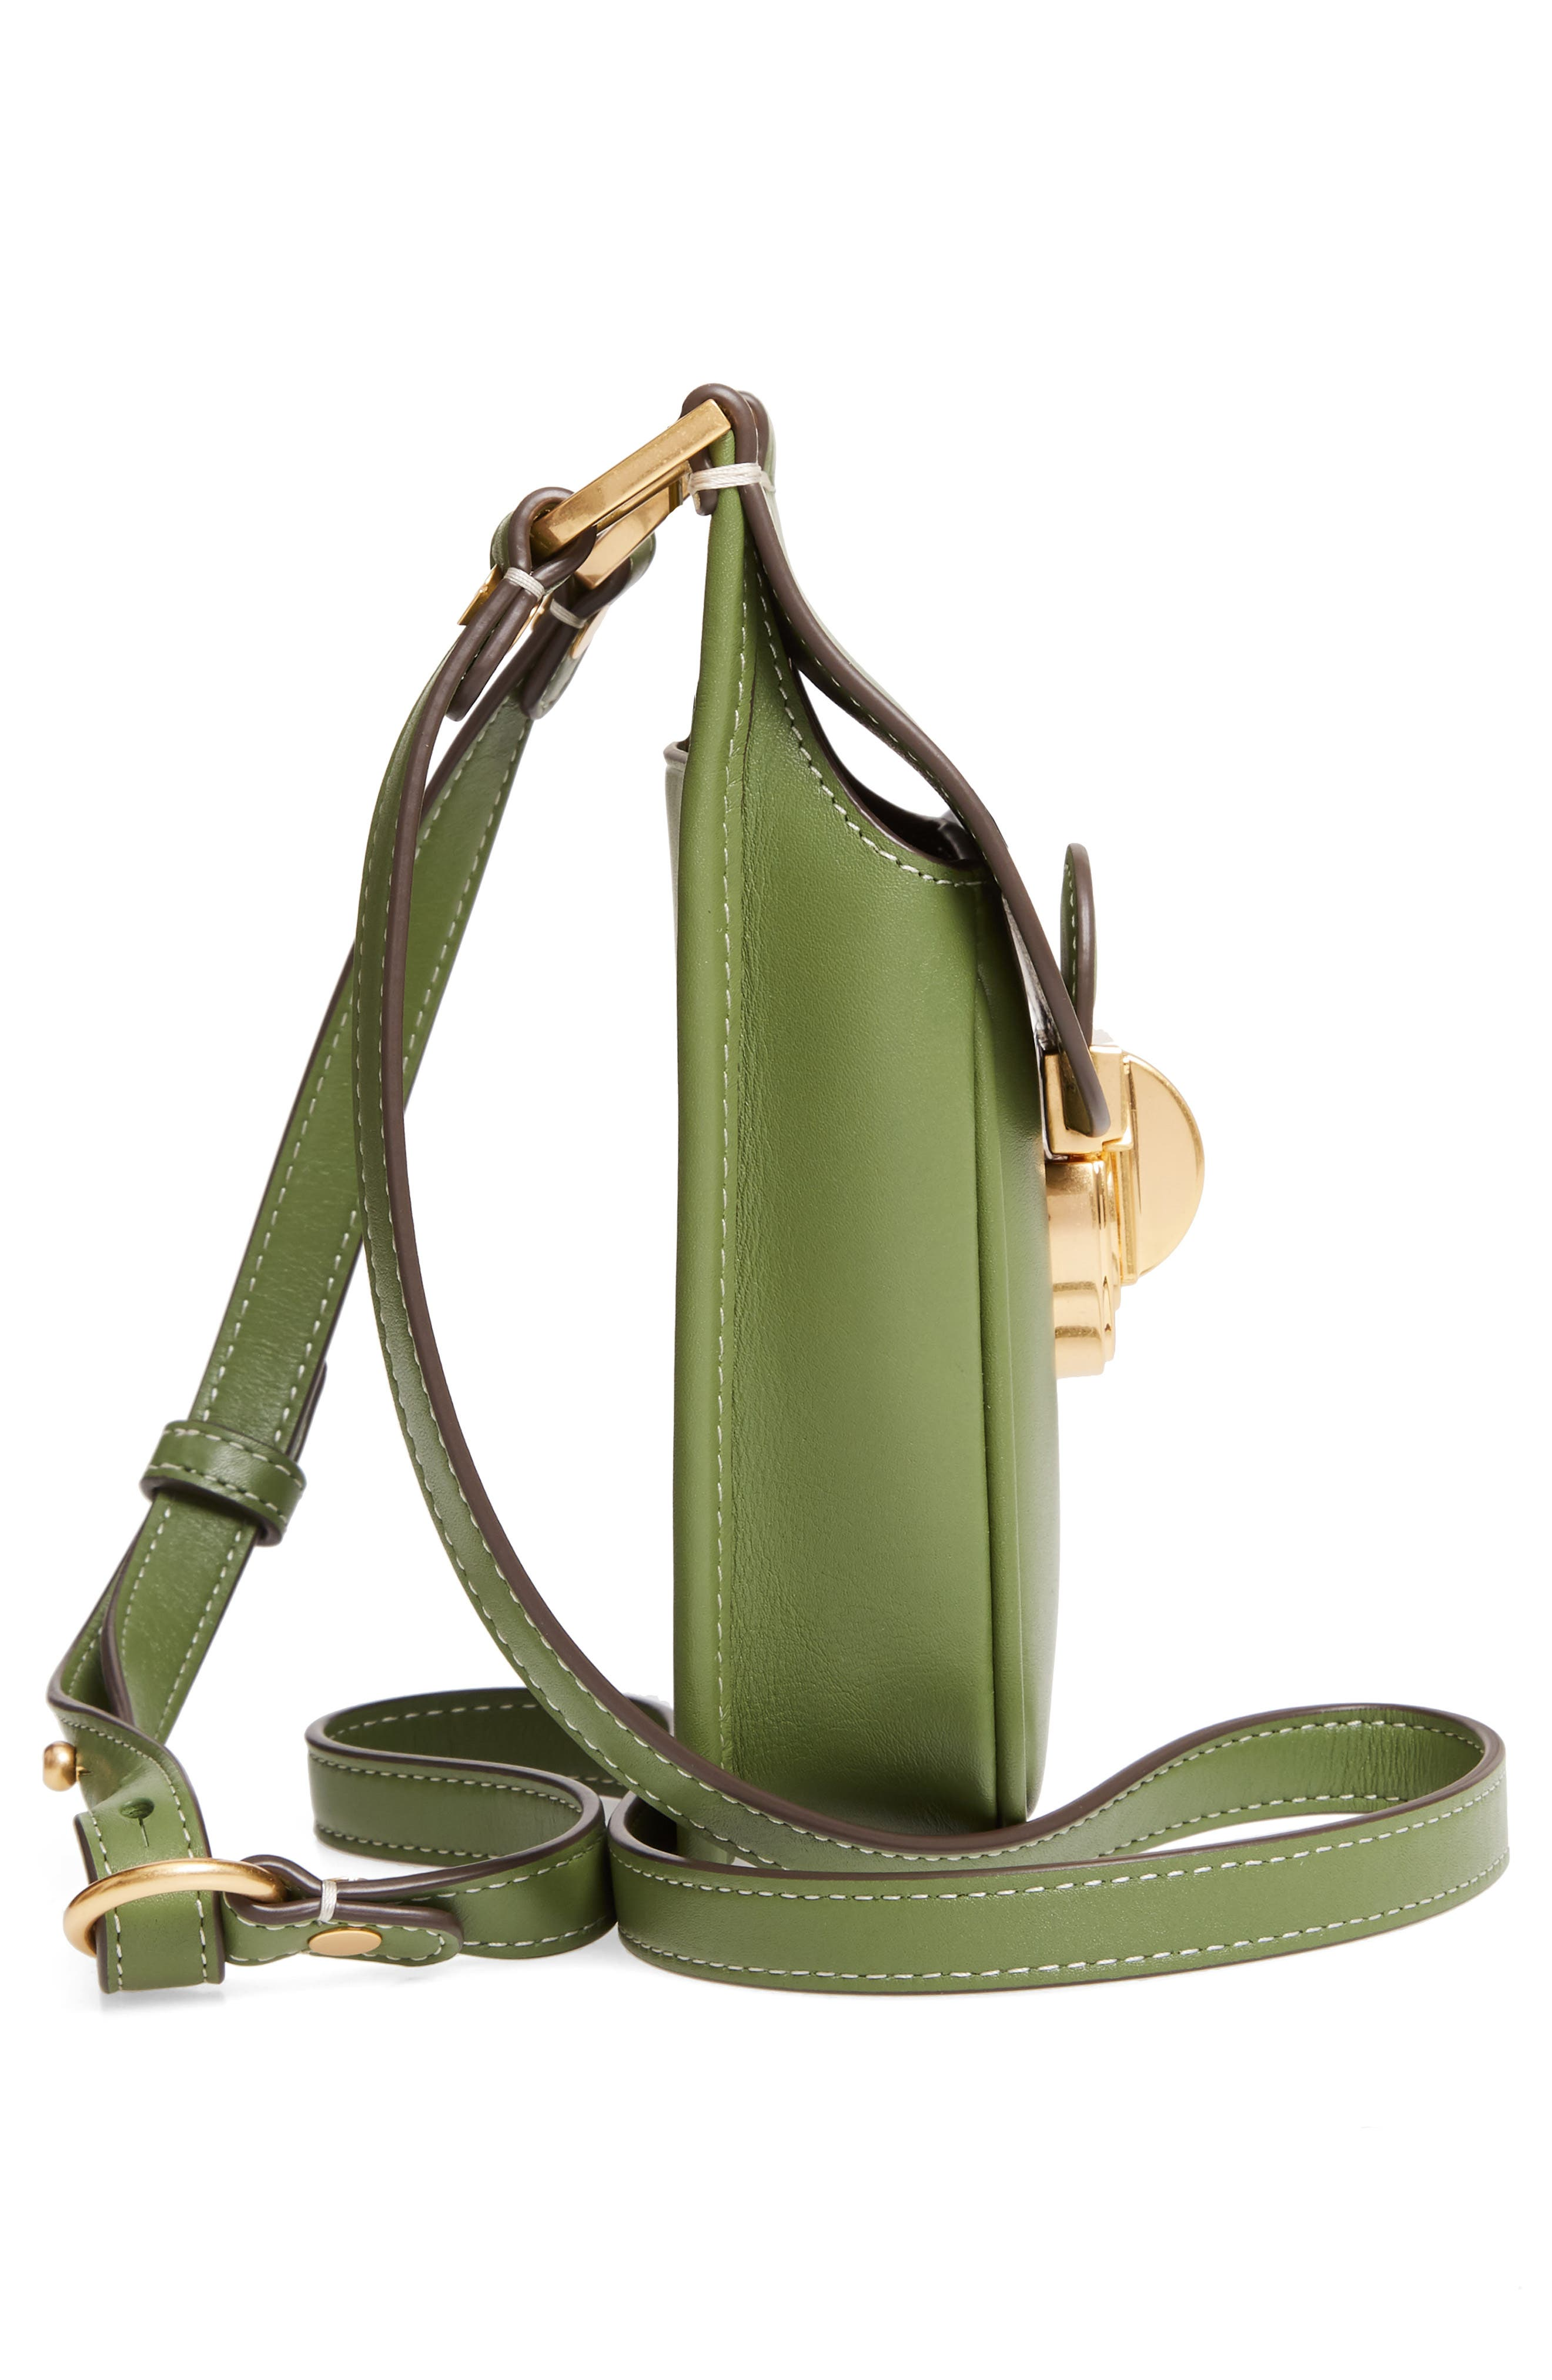 TORY BURCH, James Leather Phone Crossbody Bag, Alternate thumbnail 5, color, SPINACH